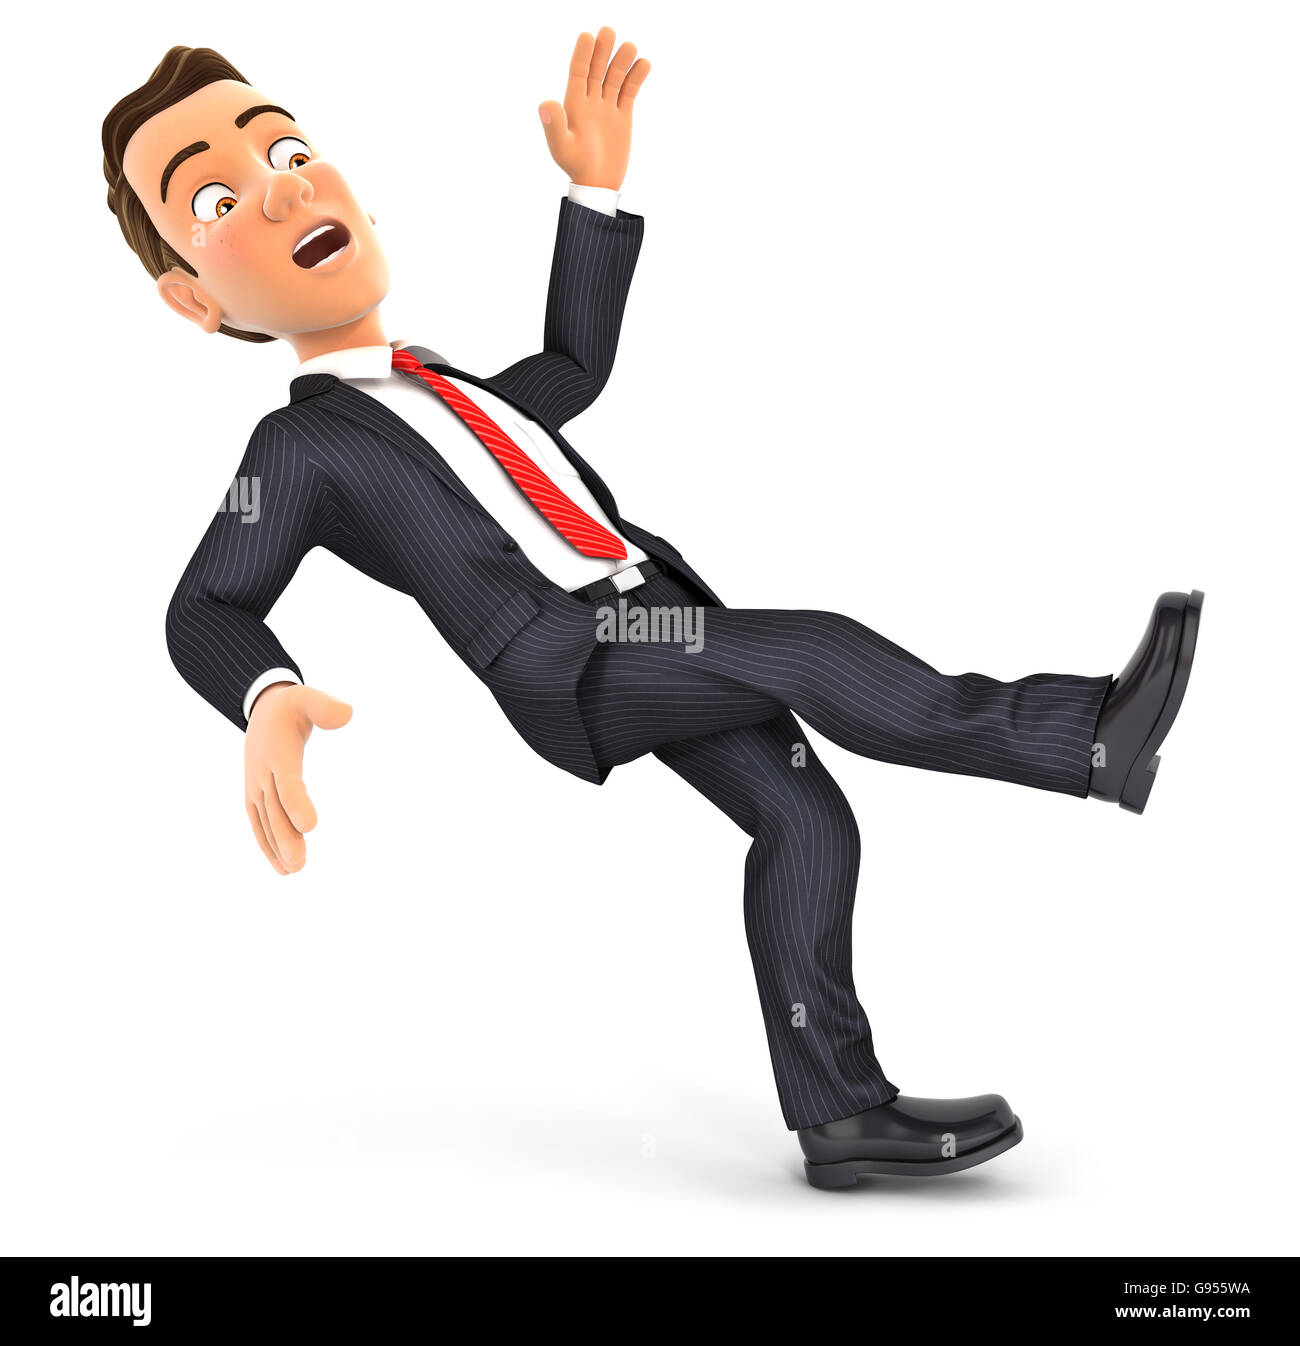 3d businessman slipping and falling, illustration with isolated white background Stock Photo